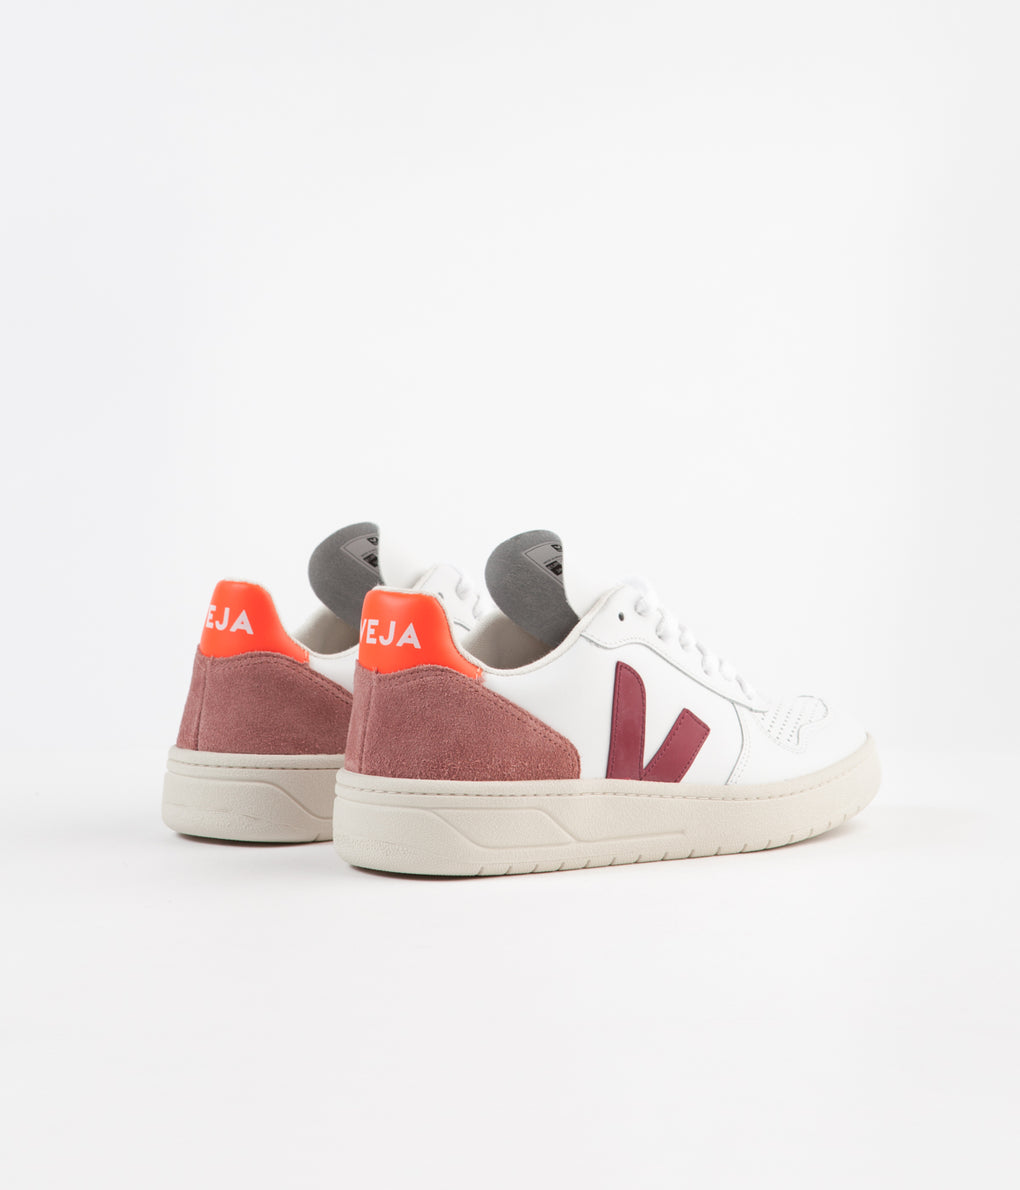 Veja Womens V-10 Leather Shoes - Extra White / Marsala / Dried Petal / Orange Fluoro